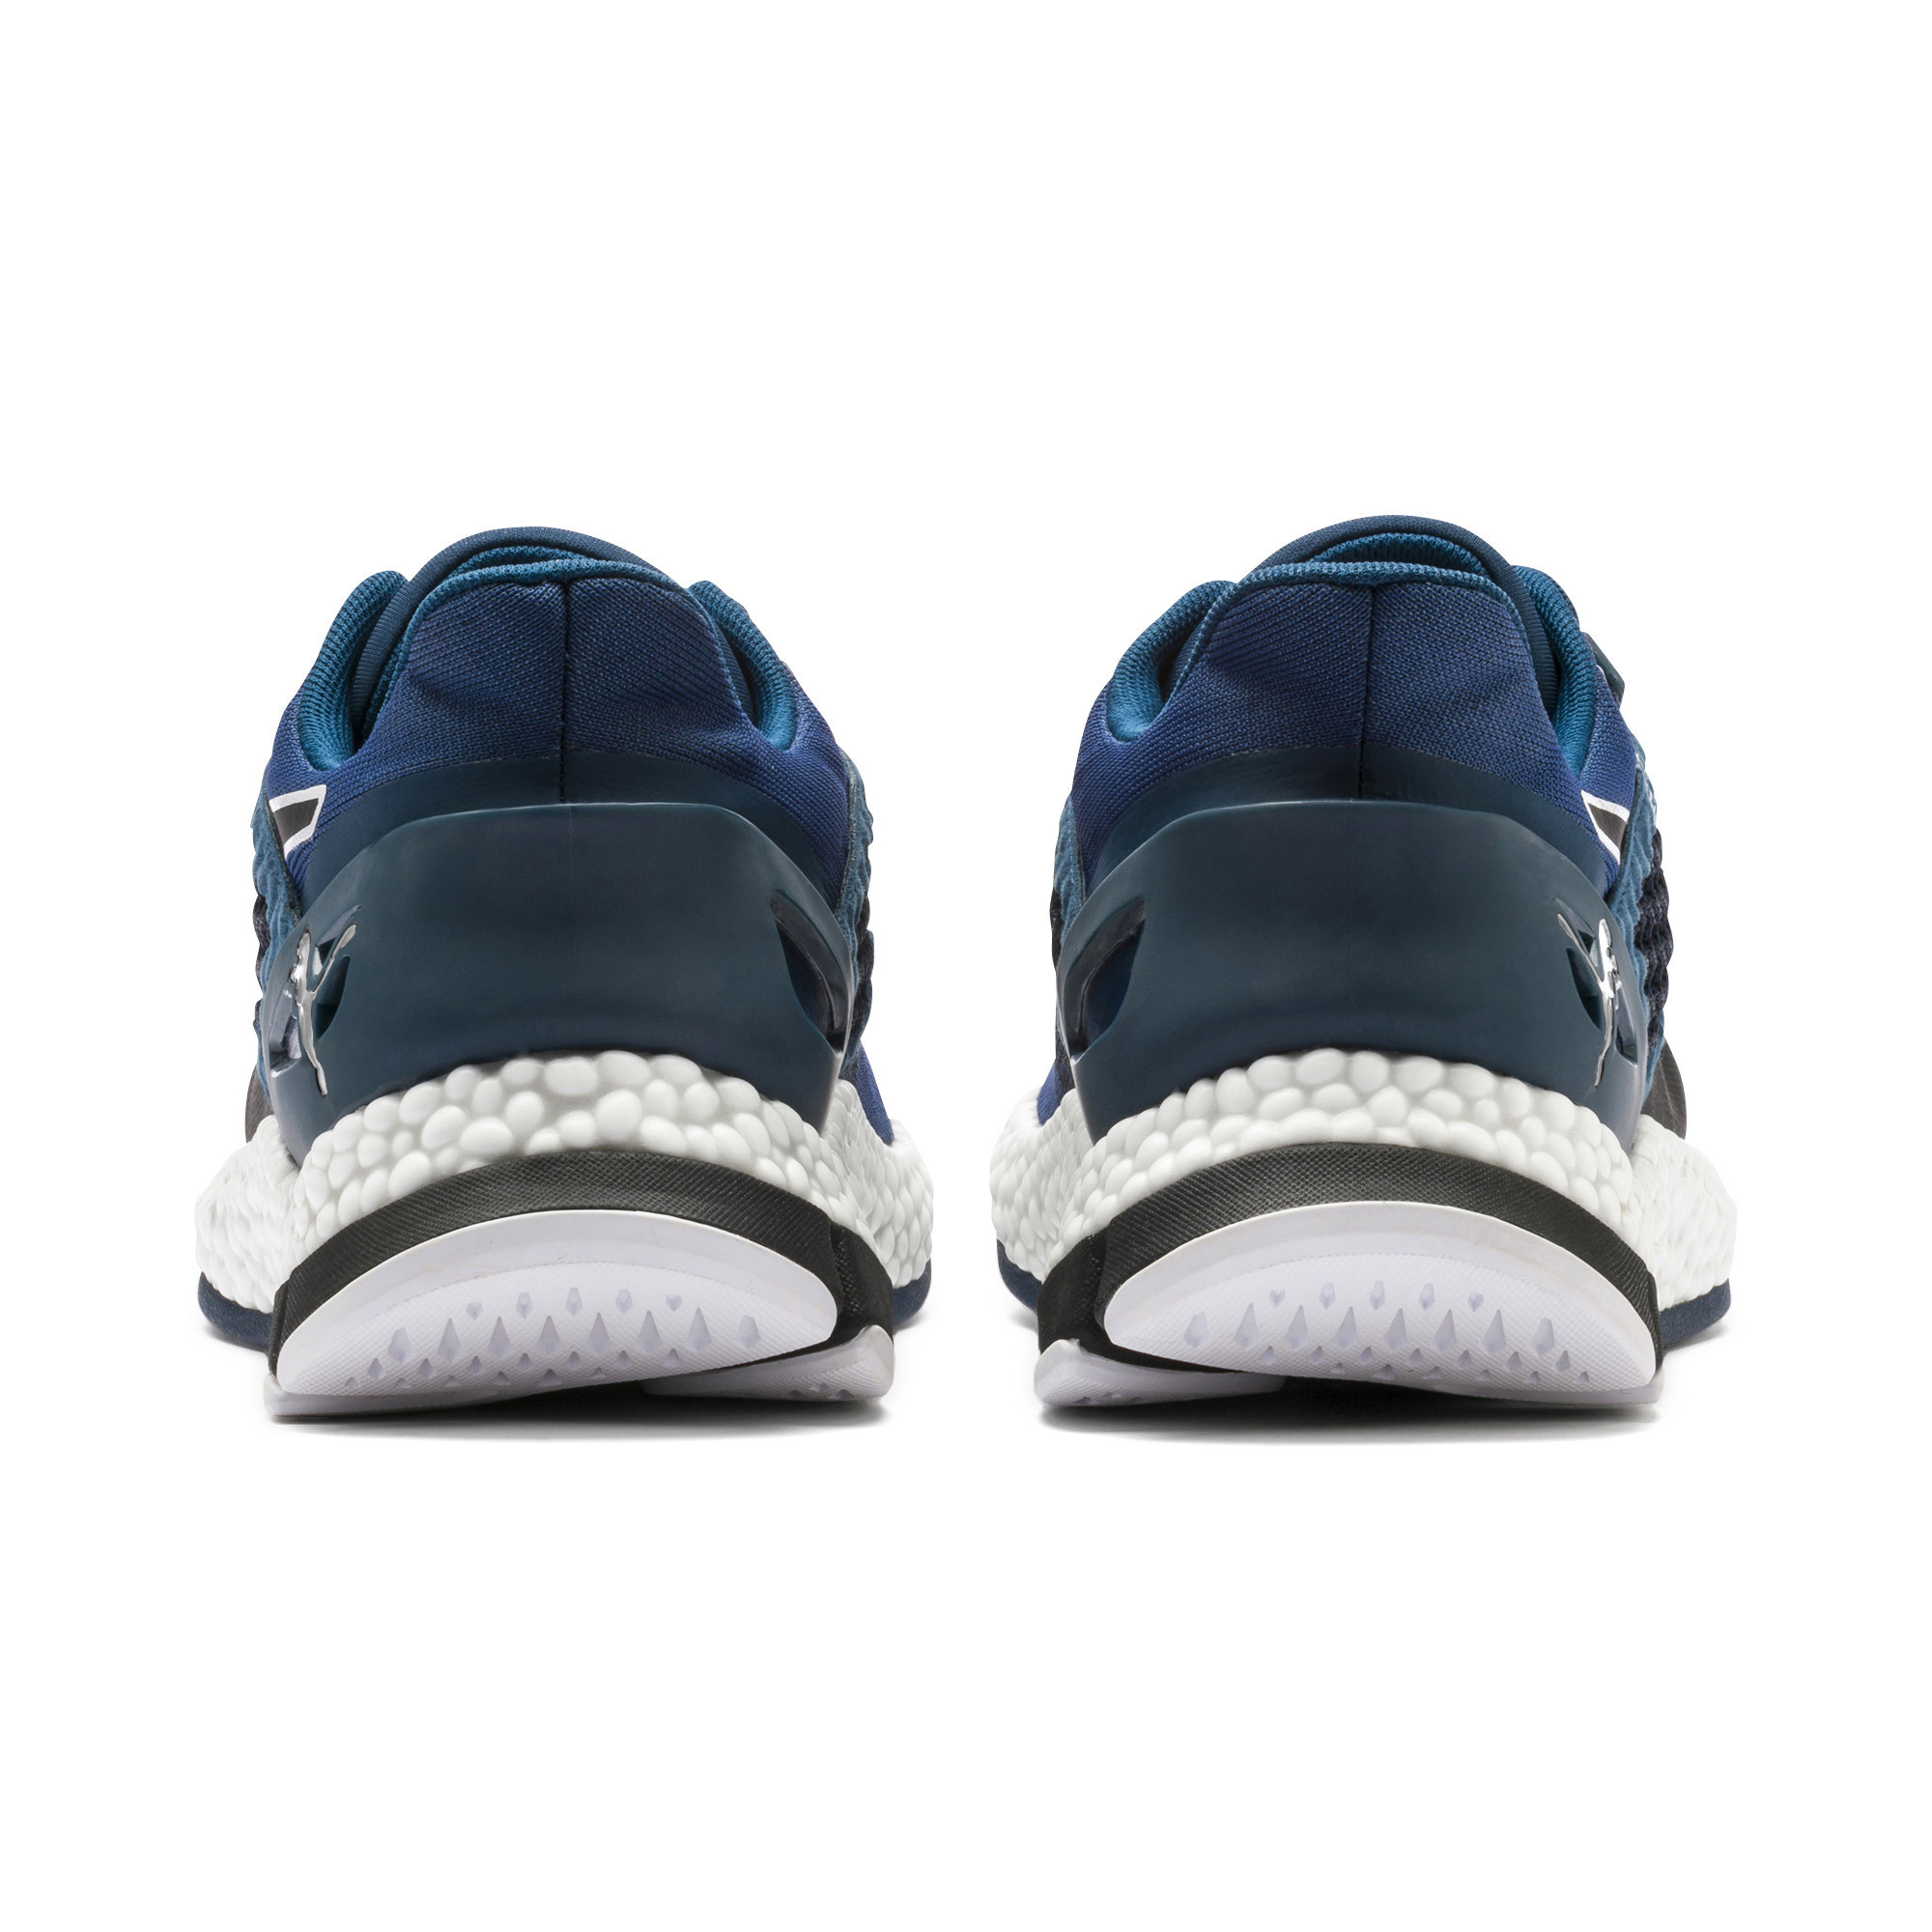 PUMA-Men-039-s-HYBRID-Astro-Running-Shoes thumbnail 6